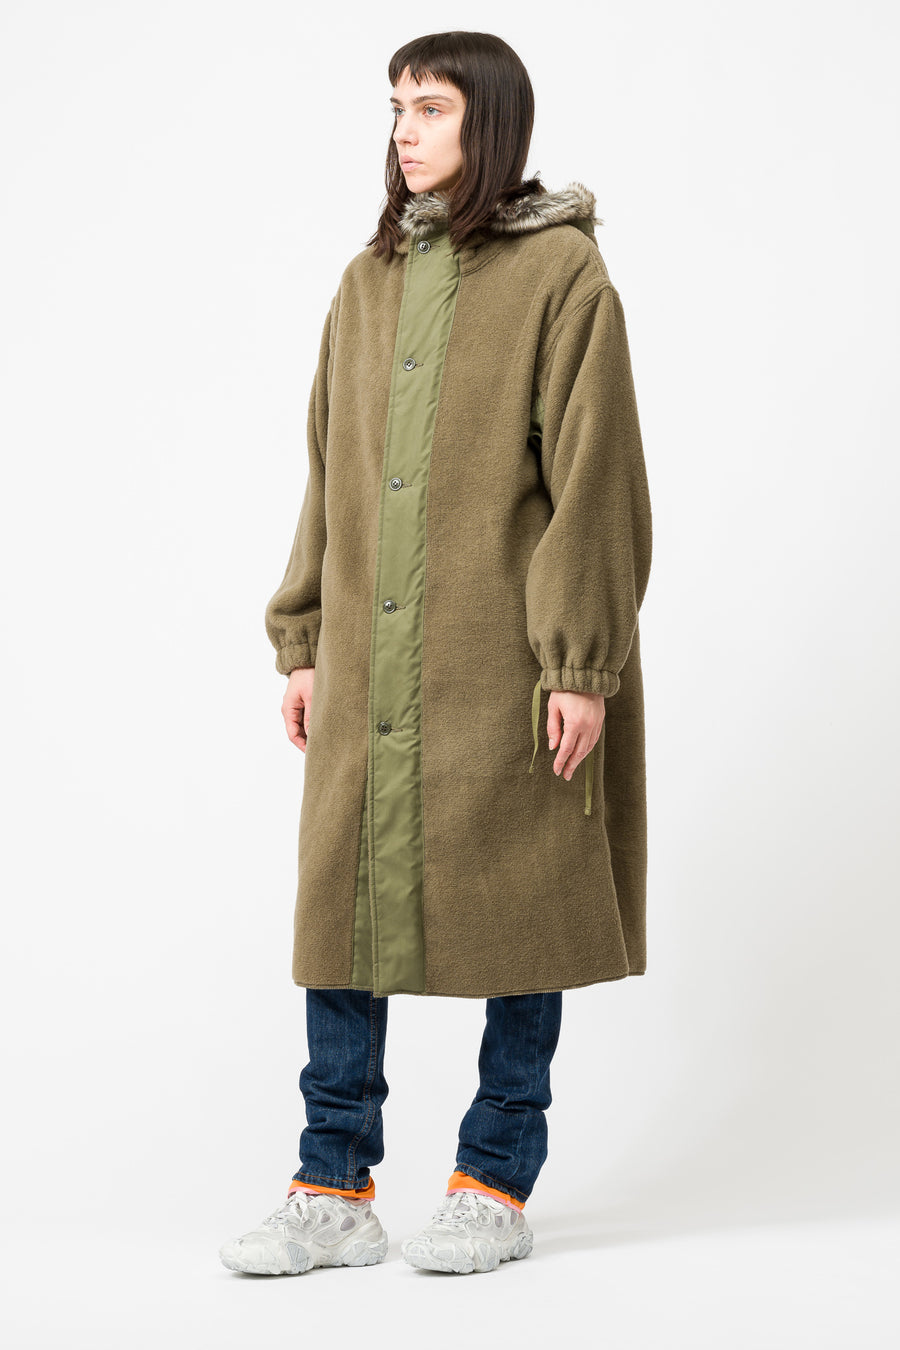 Hyke Wool Coat in Olive Drab - Notre